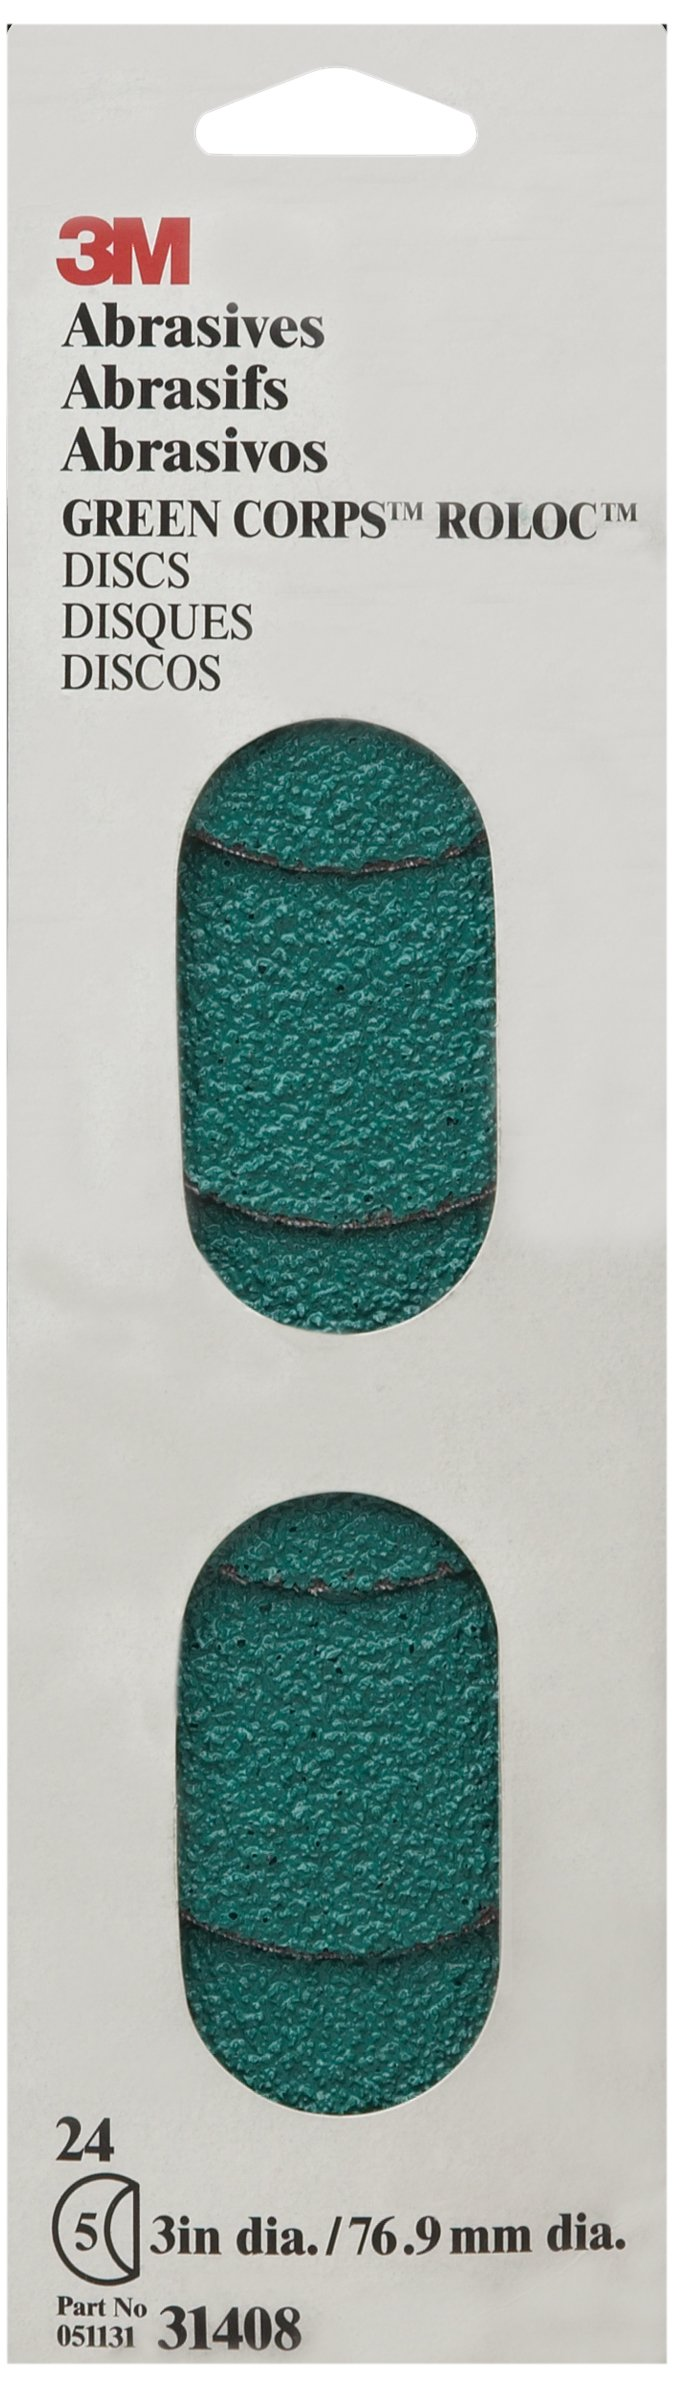 3M 31408 Green Corps Roloc 3'' 24 Grit Disc (Pack of 10)